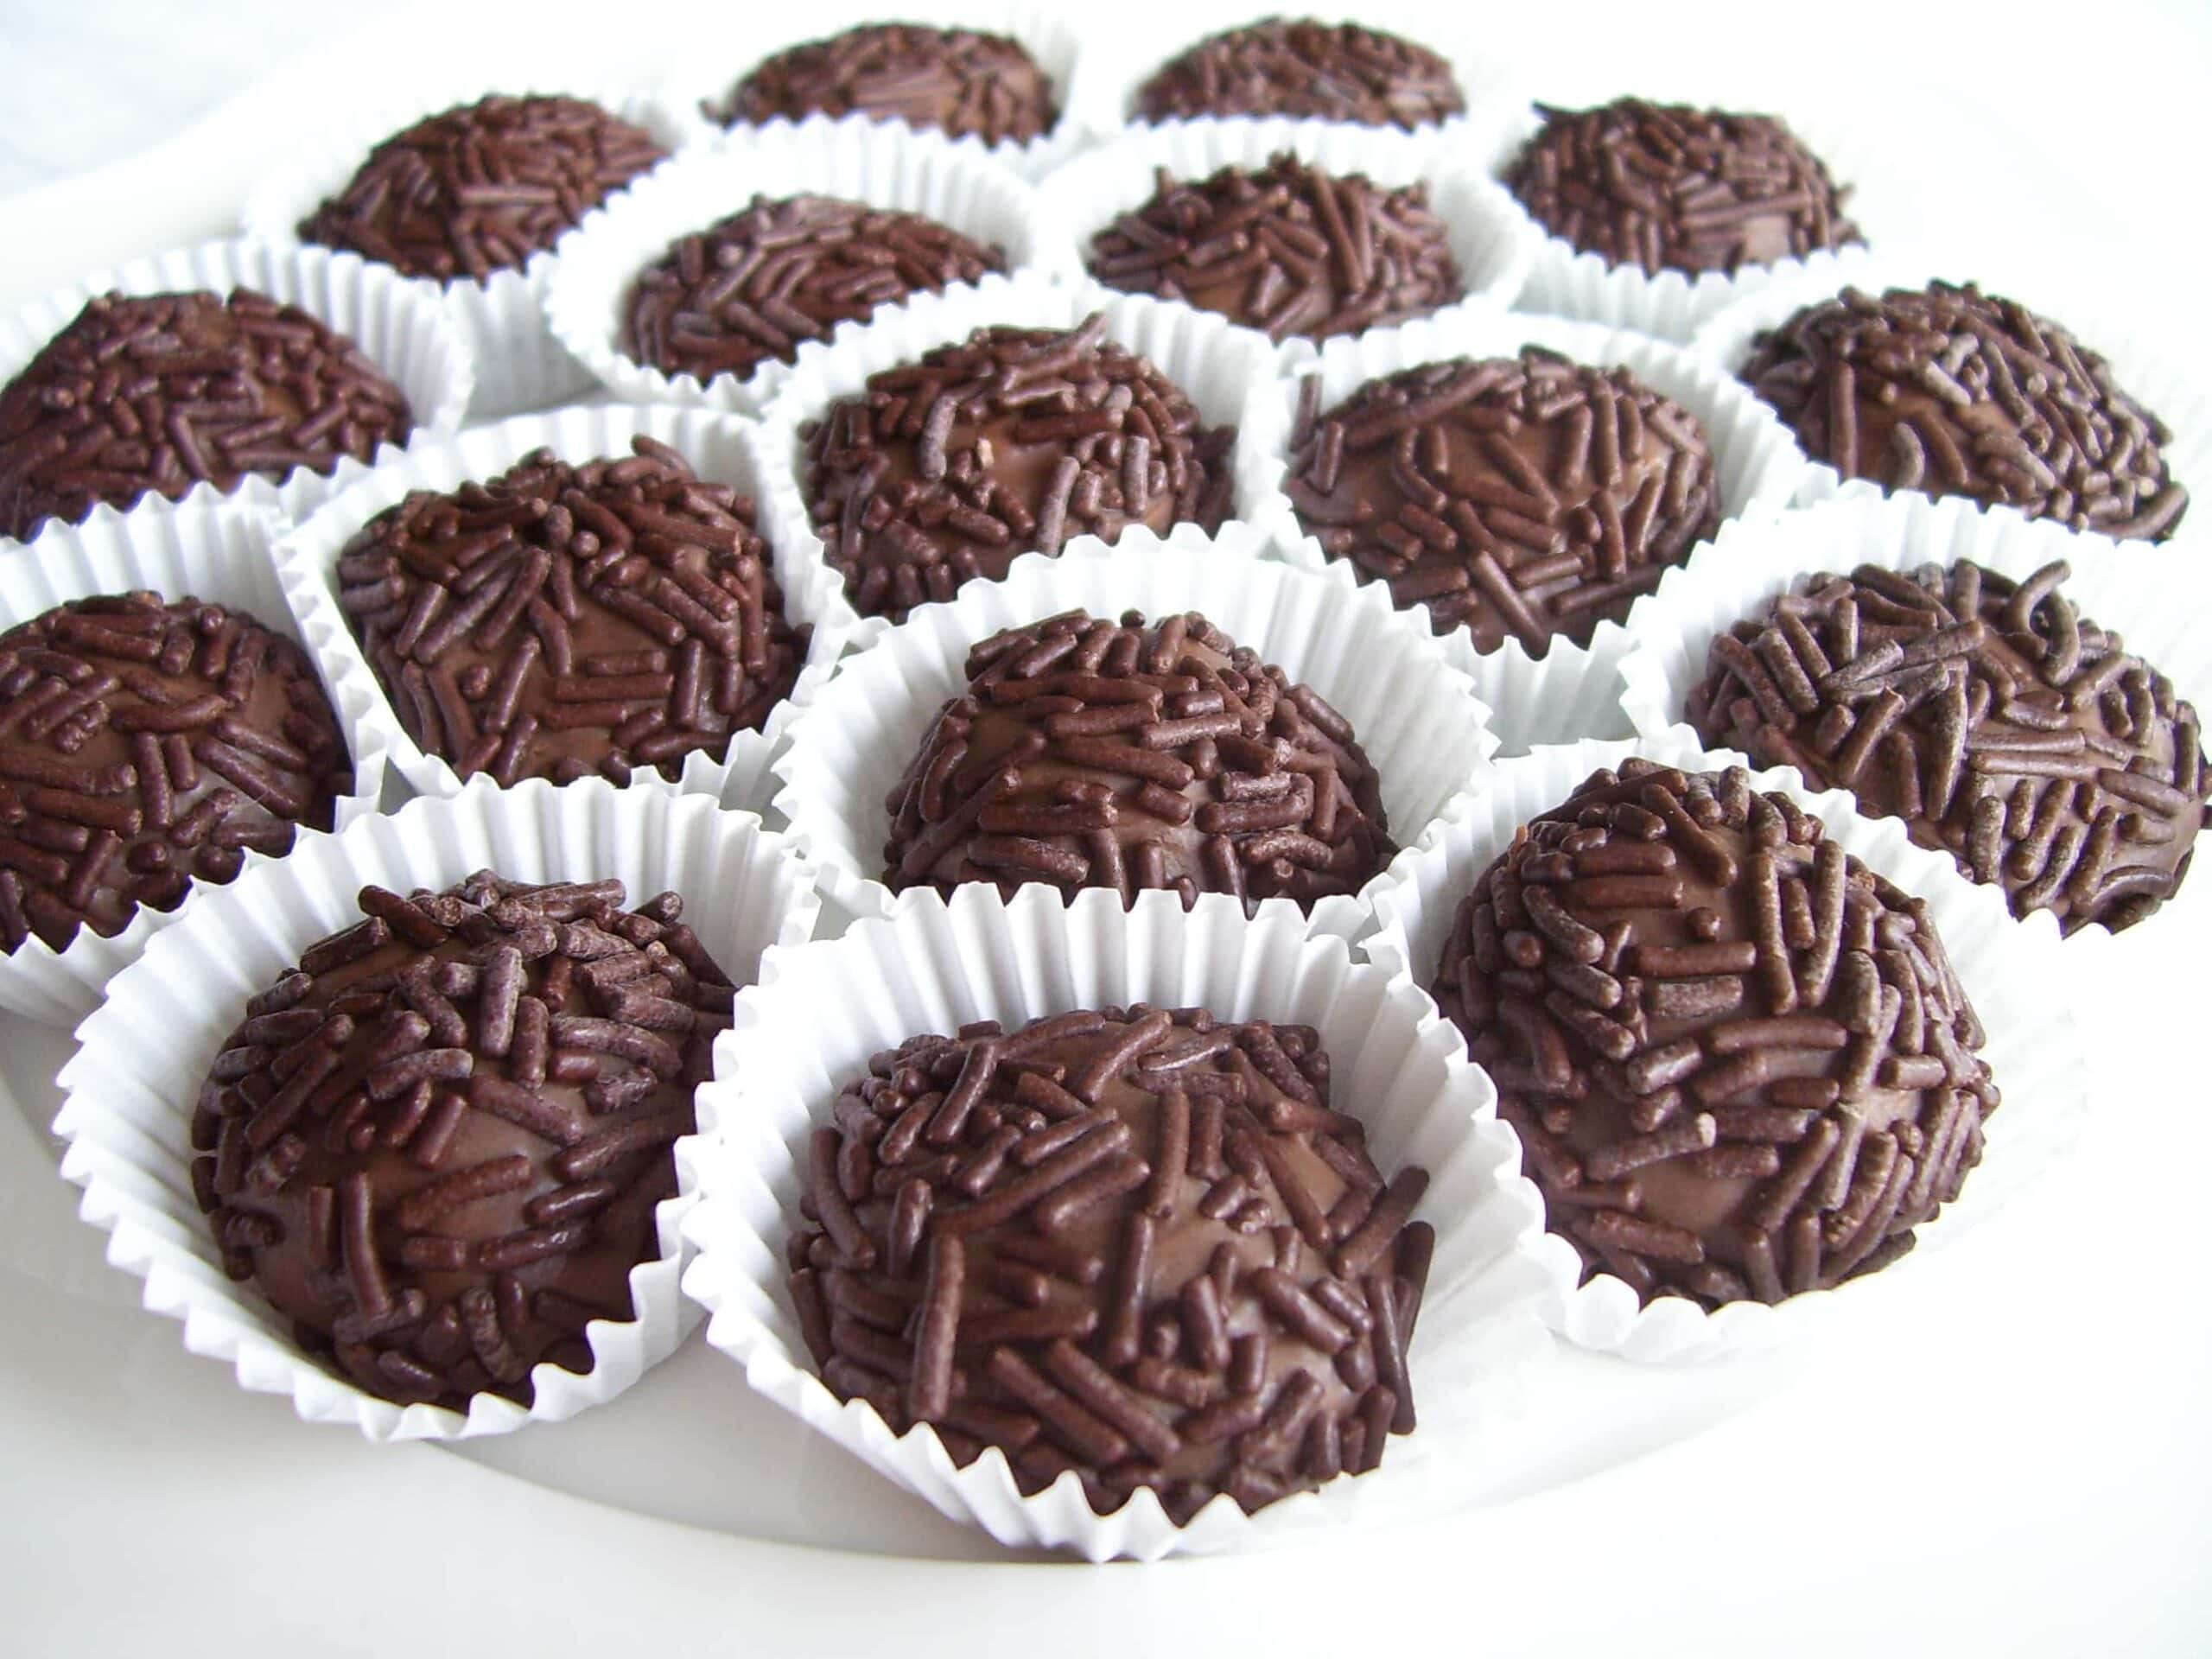 Brazilian Chocolate Truffle Brigadeiro Living Healthy With Chocolate